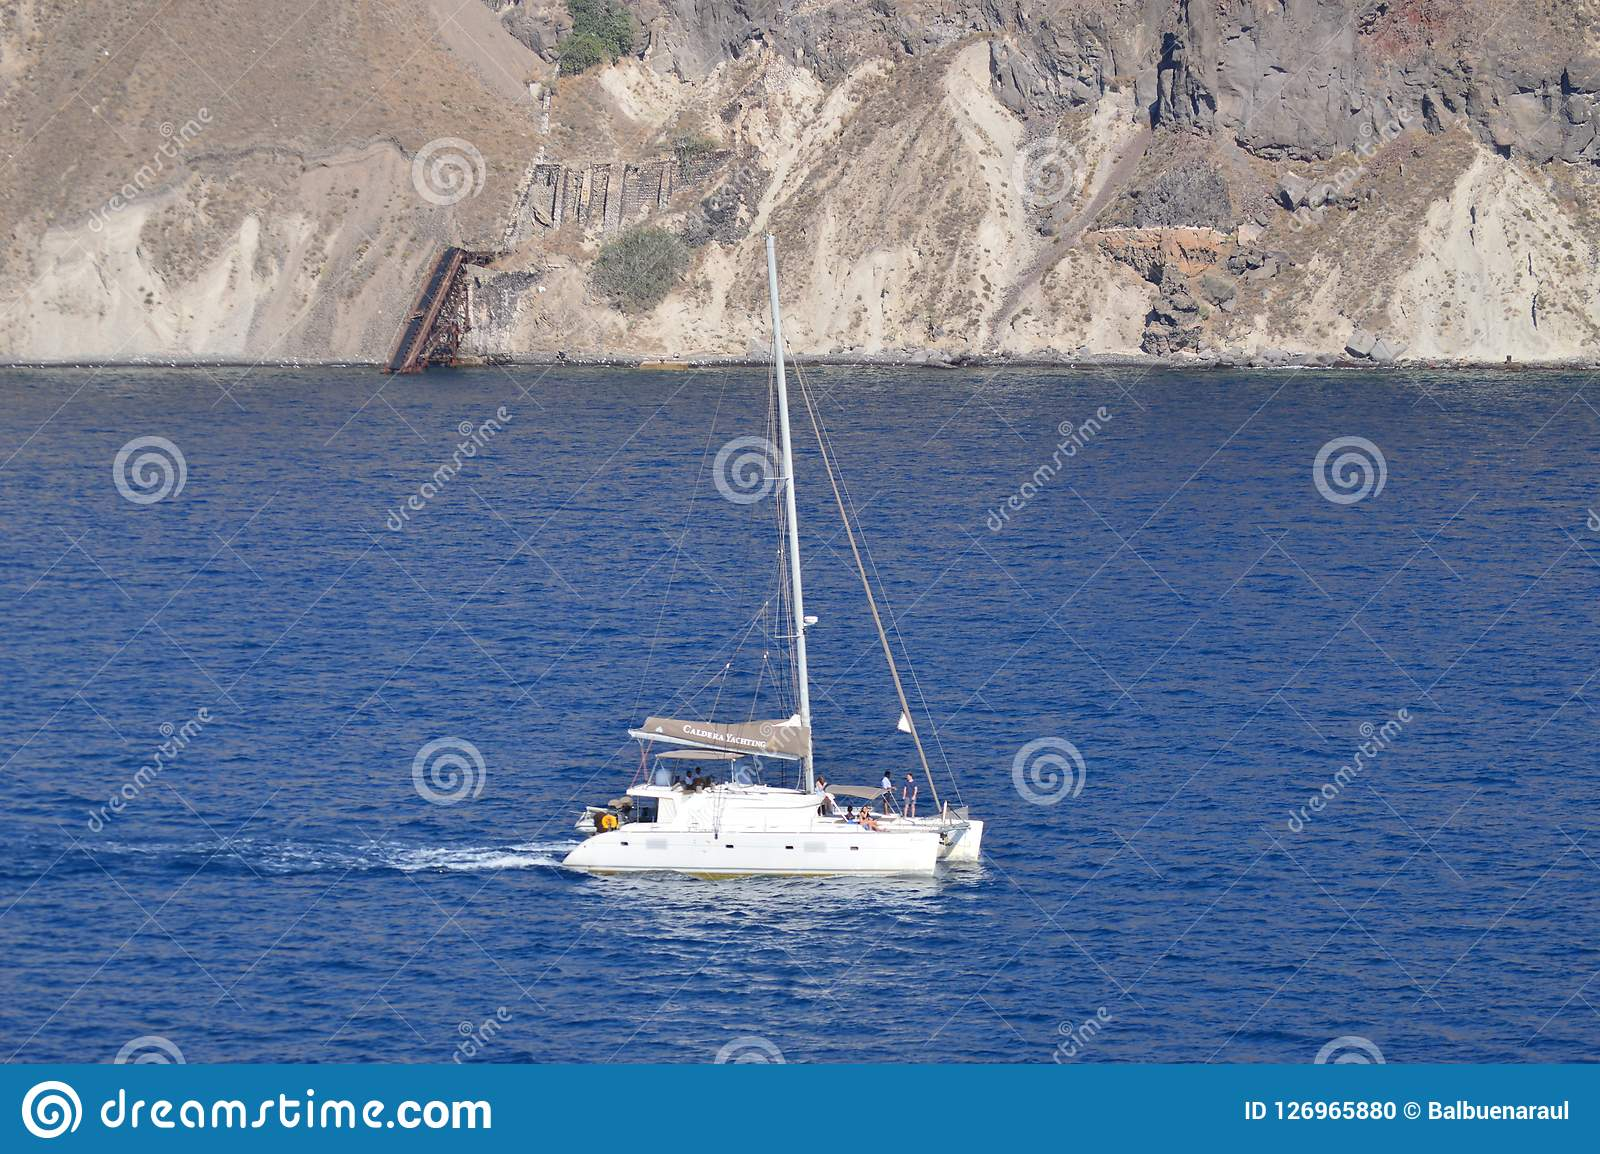 Ship Sailing Through The Bay Of Santorini Island Photo From High Sea. Transportation Landscapes, Cruises, Travel